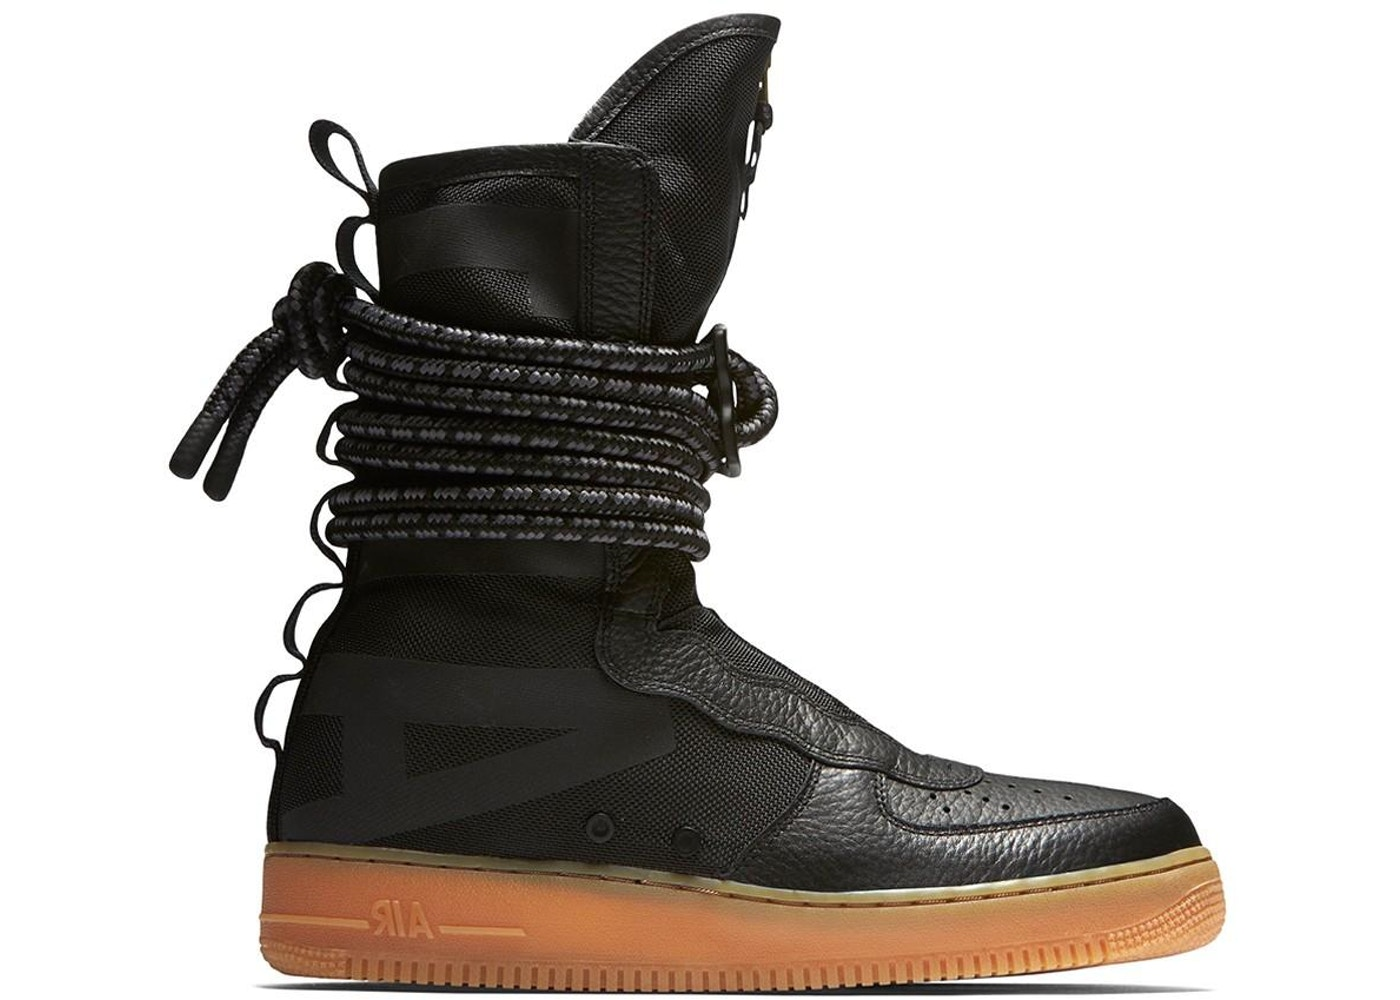 huge selection of 3eab2 4119b SF Air Force 1 High Black Gum - AA1128-001